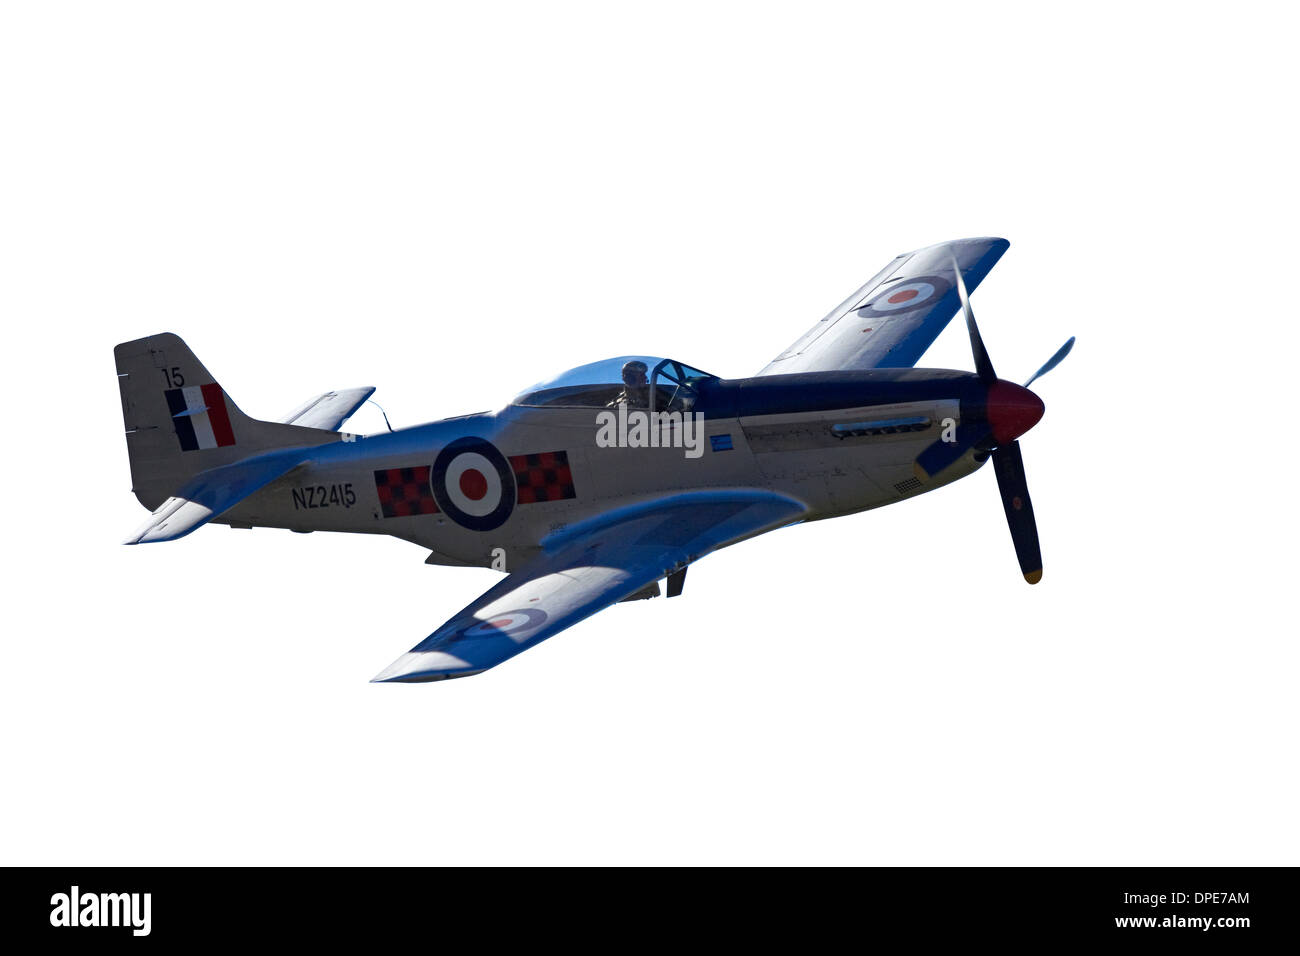 Cutout of P-51 Mustang - American Fighter Plane - Stock Image